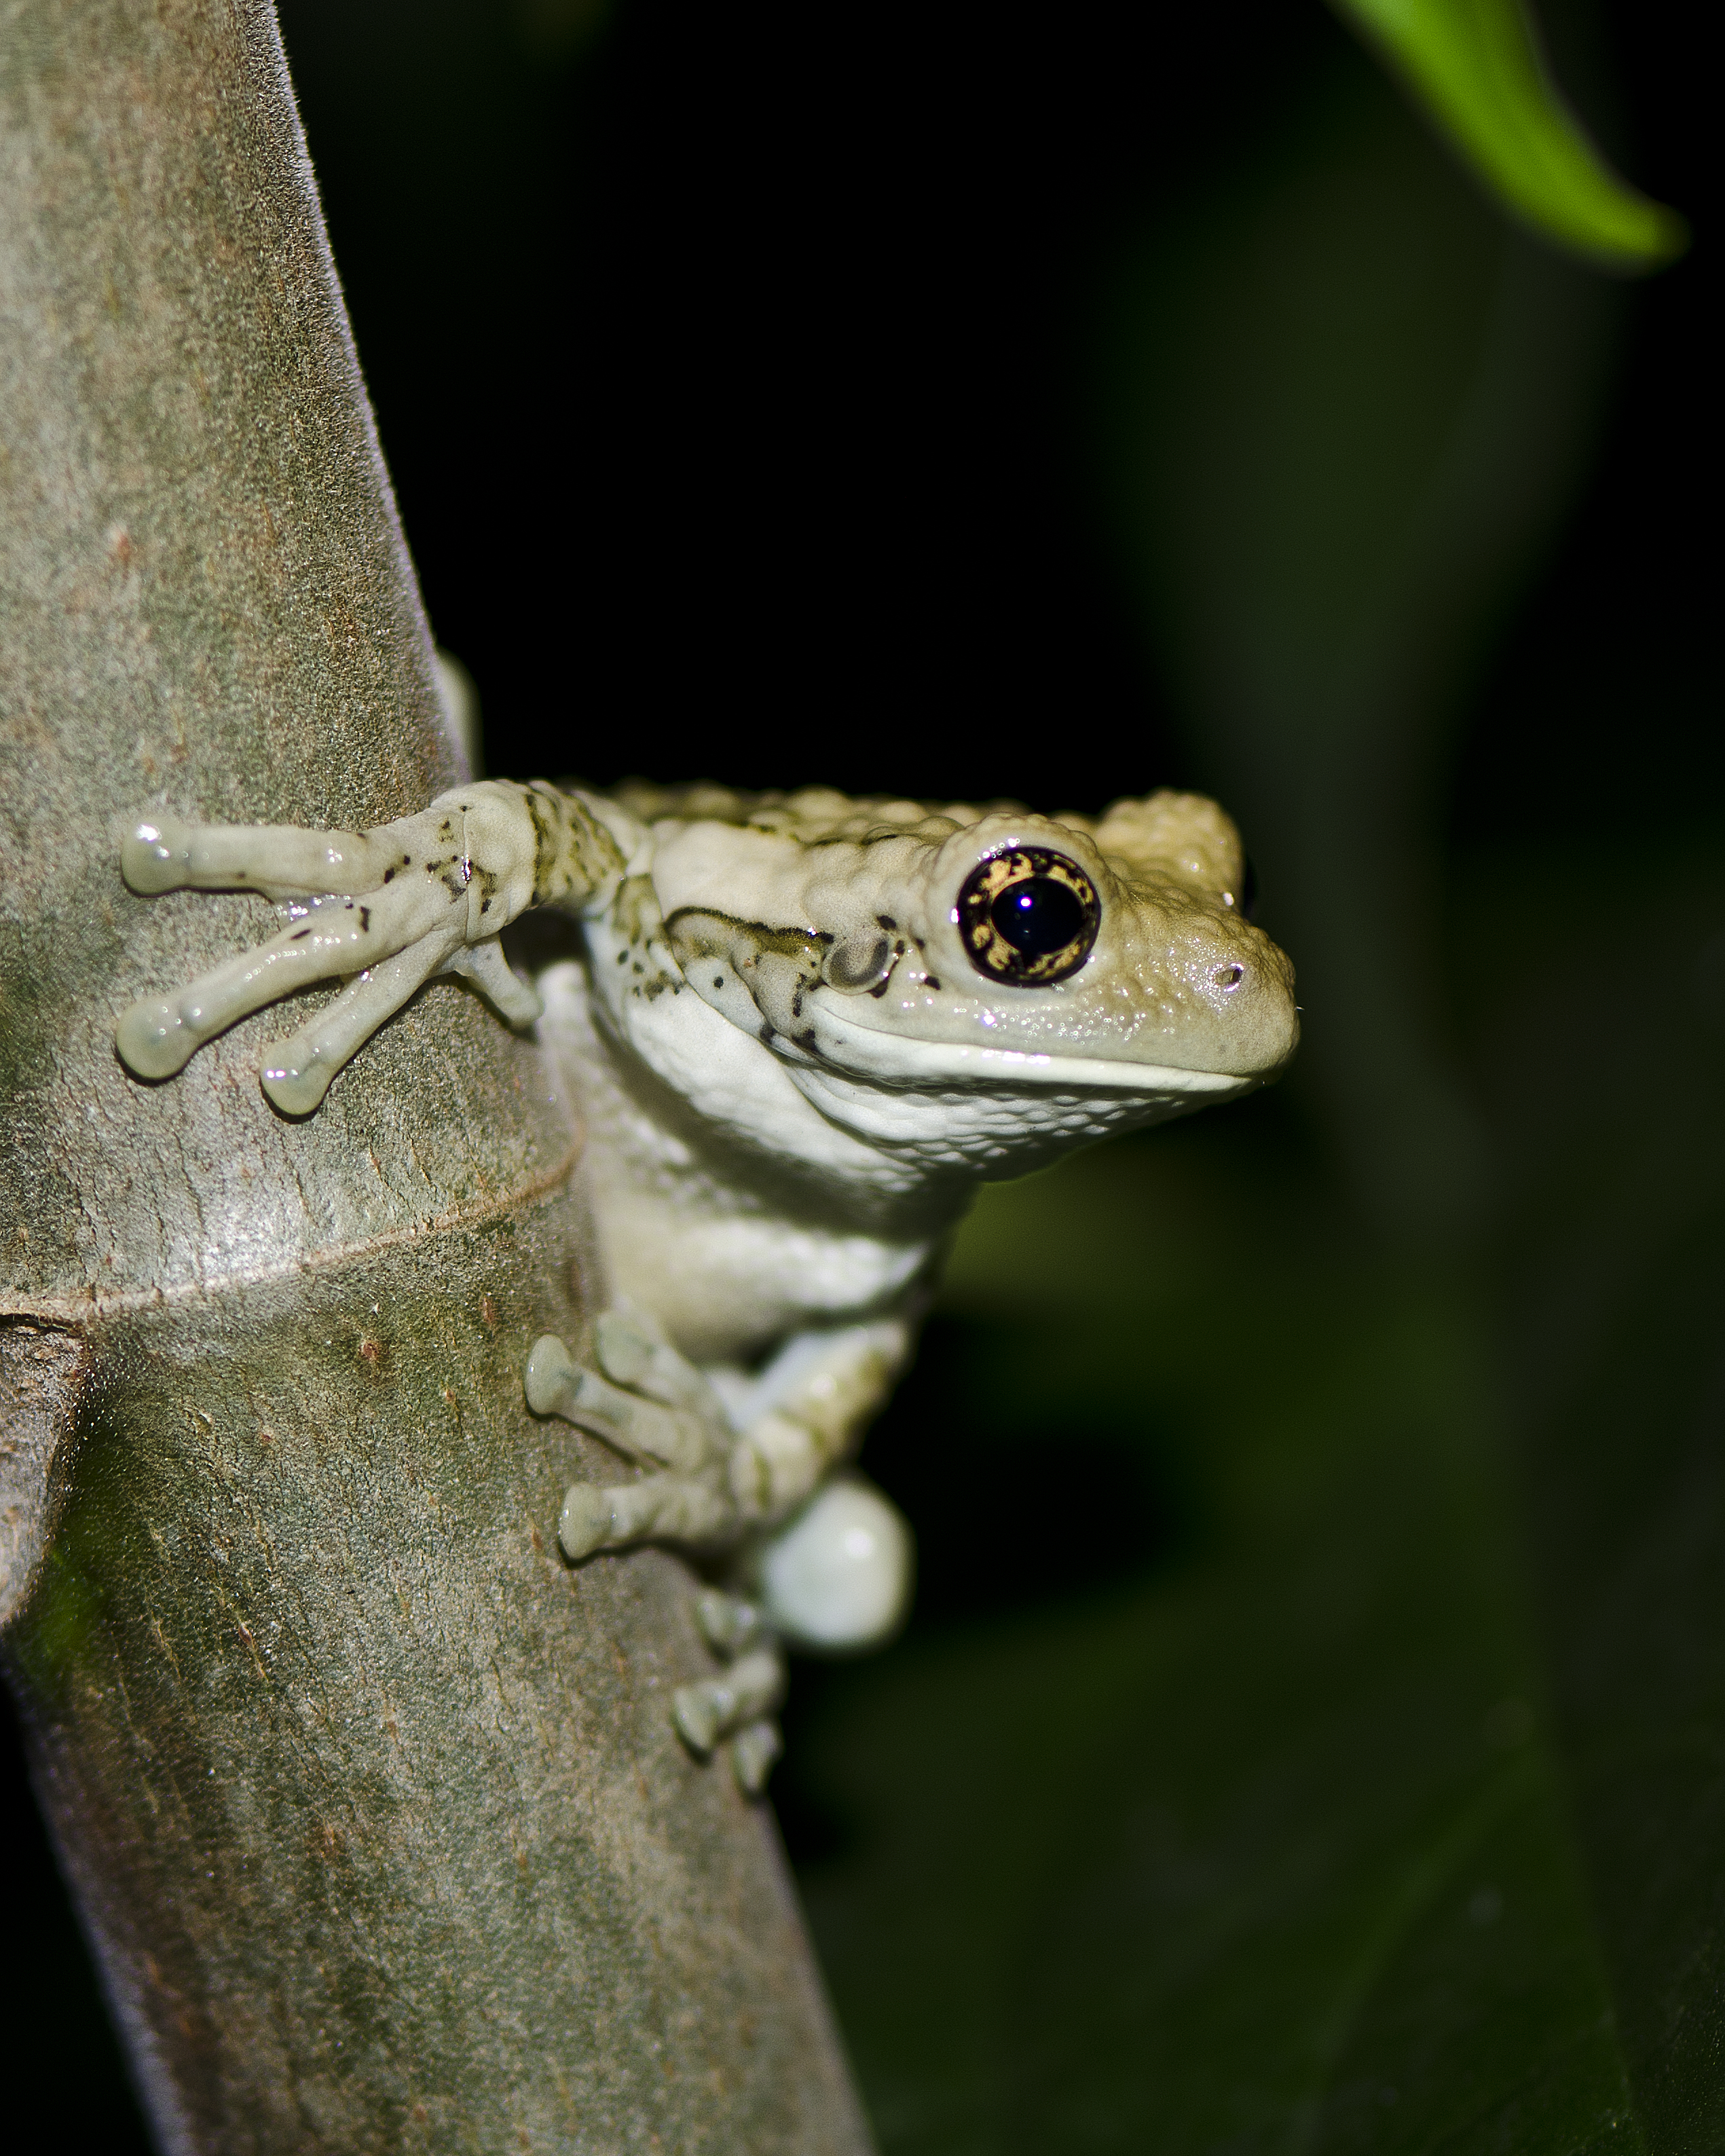 #166 Veined Treefrog